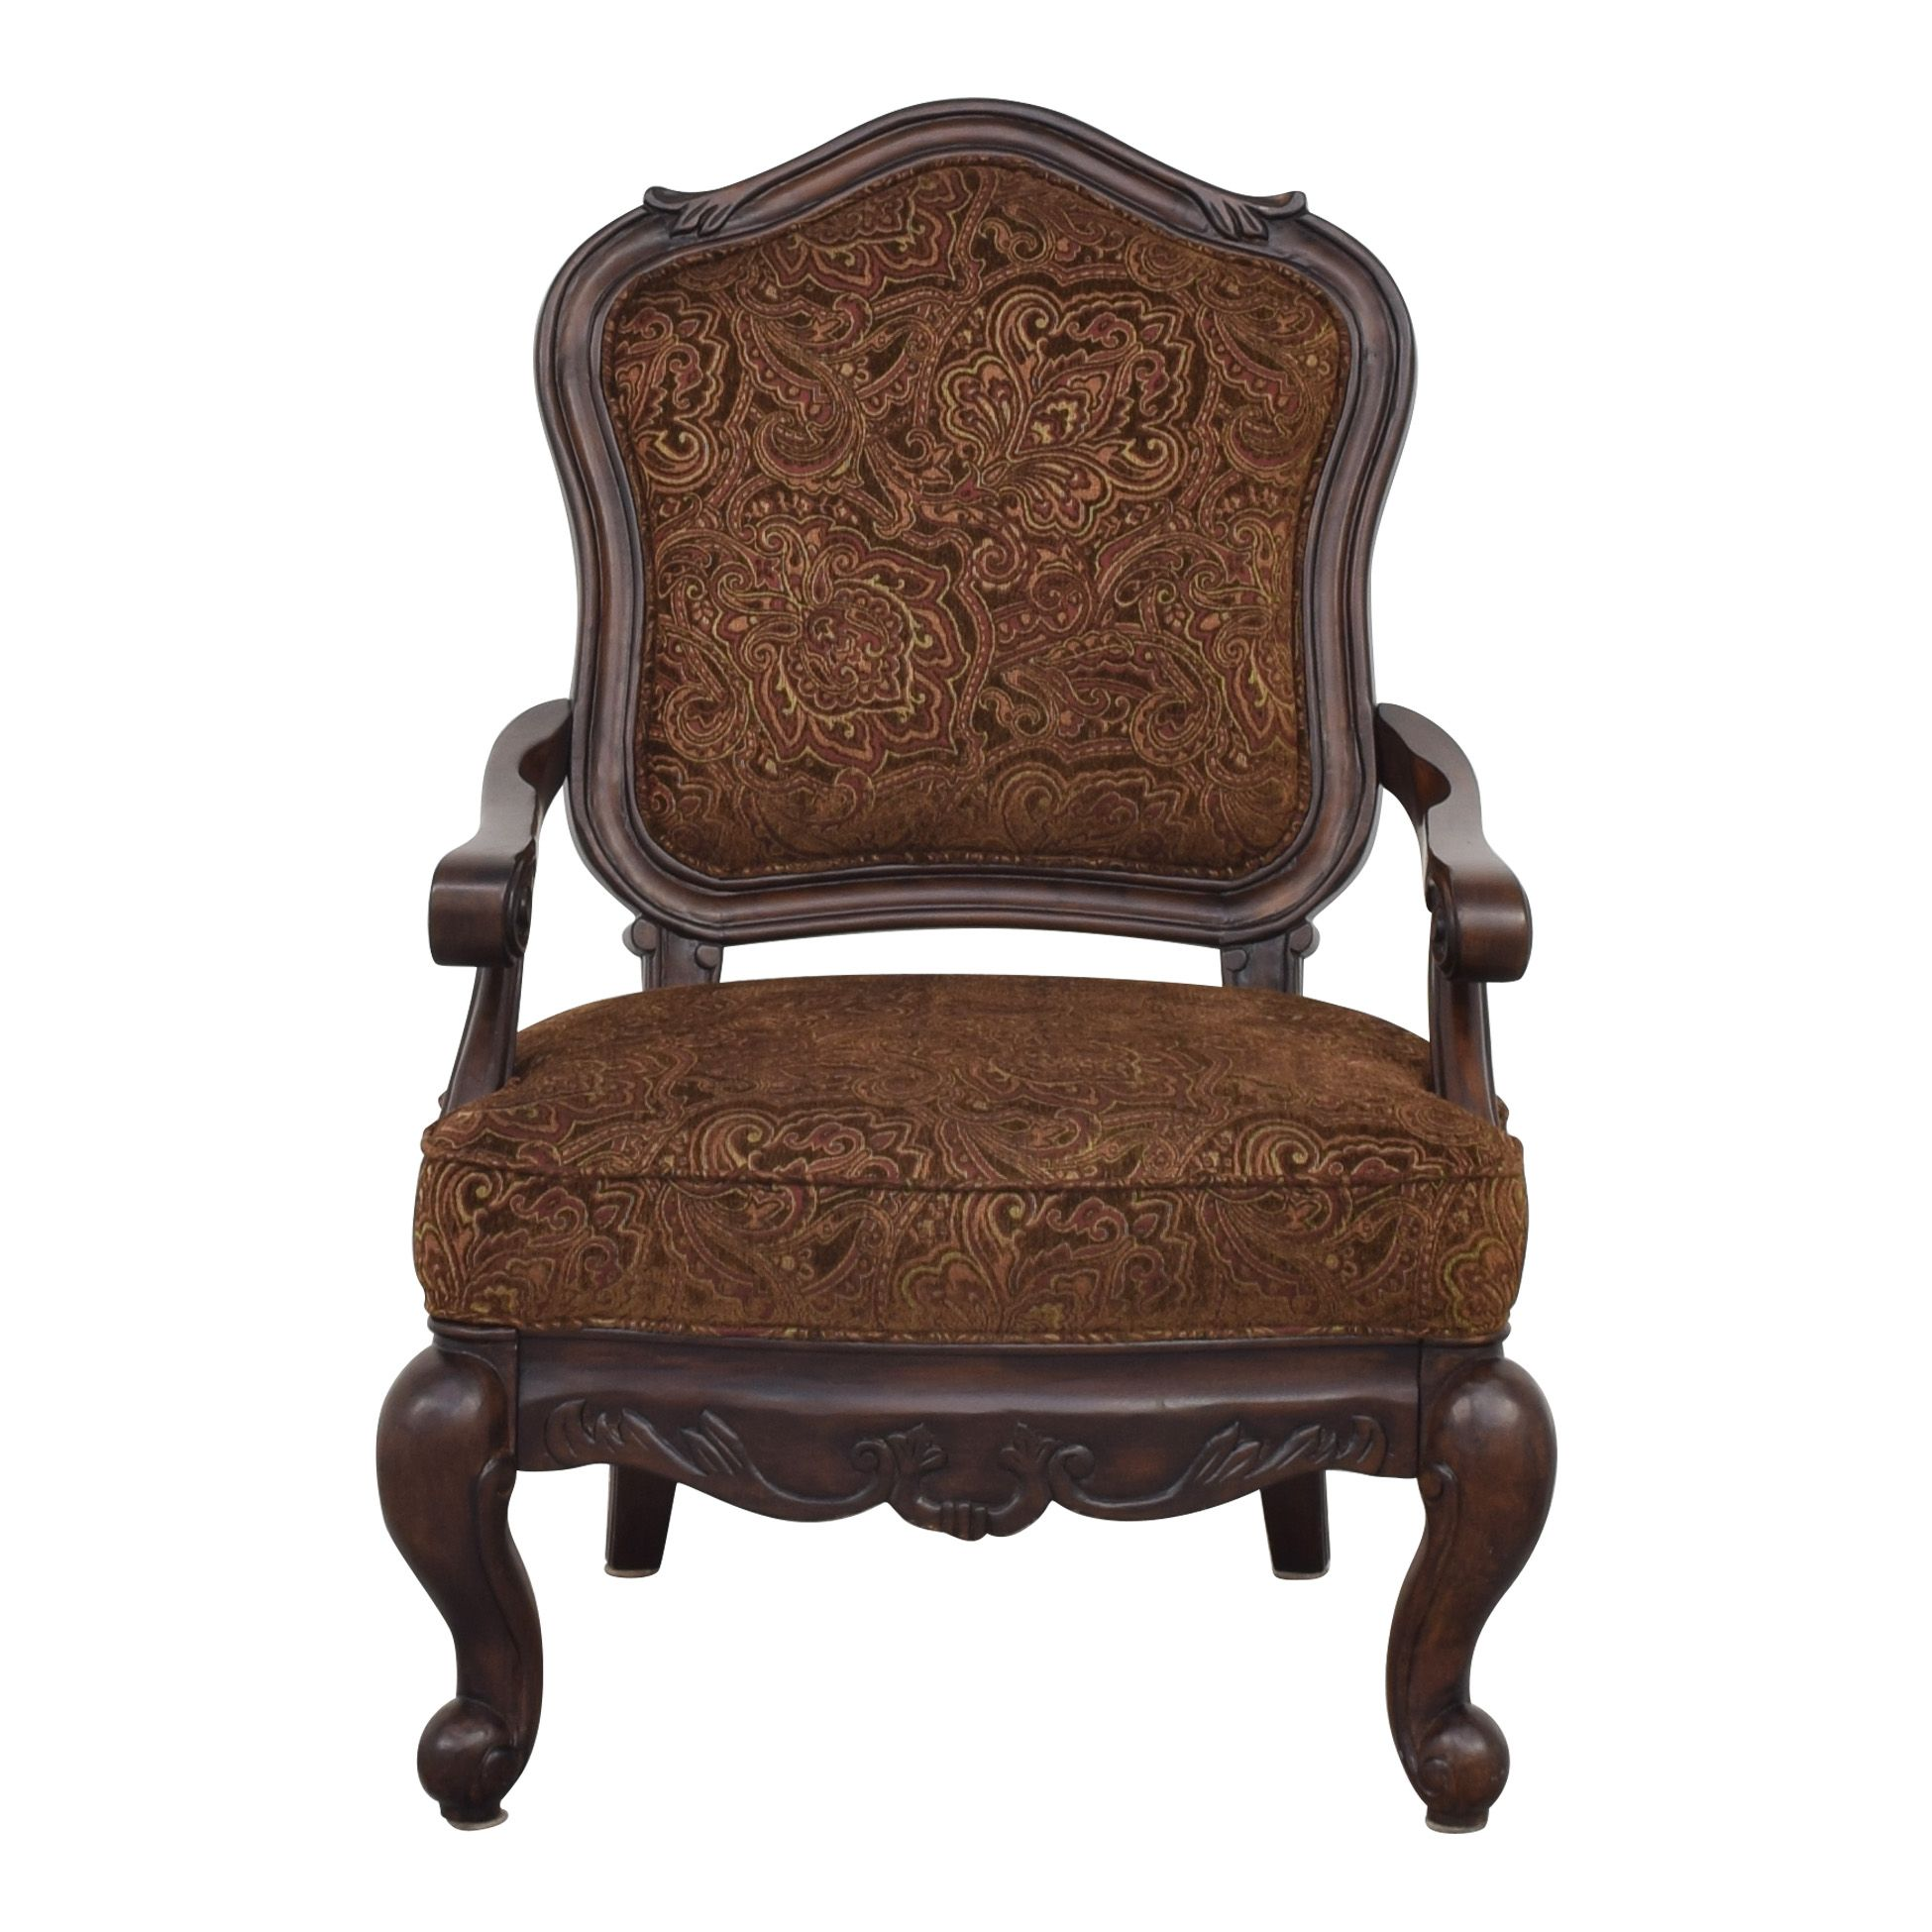 Ashley Signature North Shore Showood Accent Chair In 2020 Accent Chairs Chair Furniture